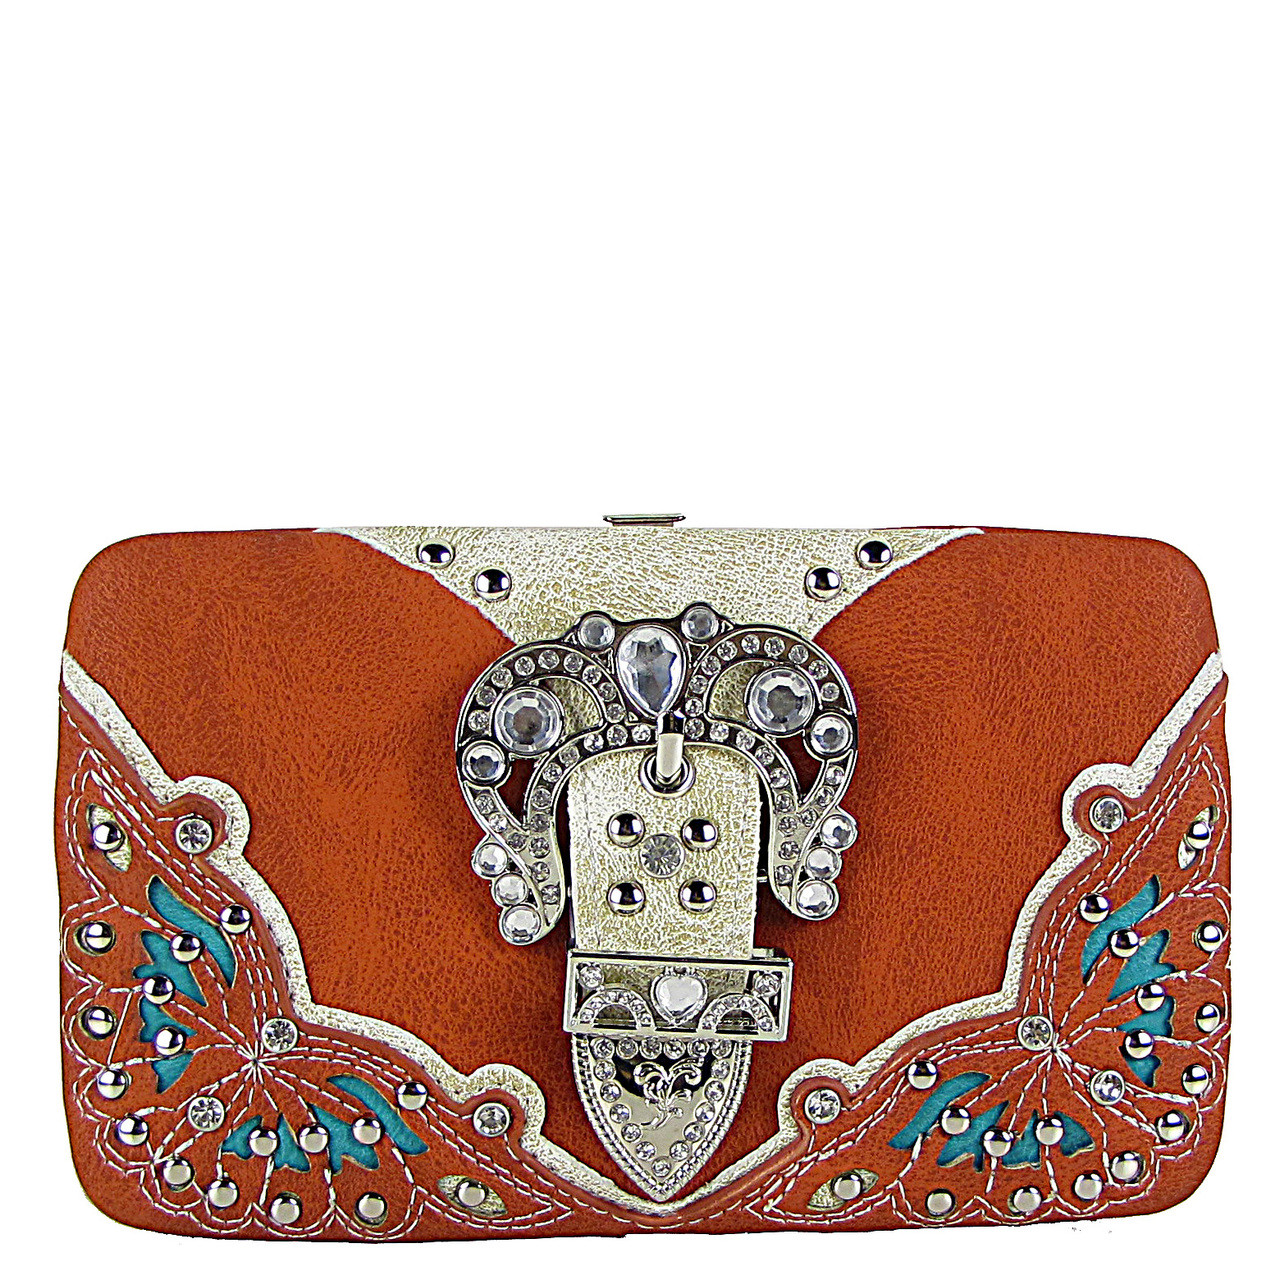 ORANGE RHINESTONE BUCKLE WESTERN FLAT THICK WALLET FW2-12114ORG